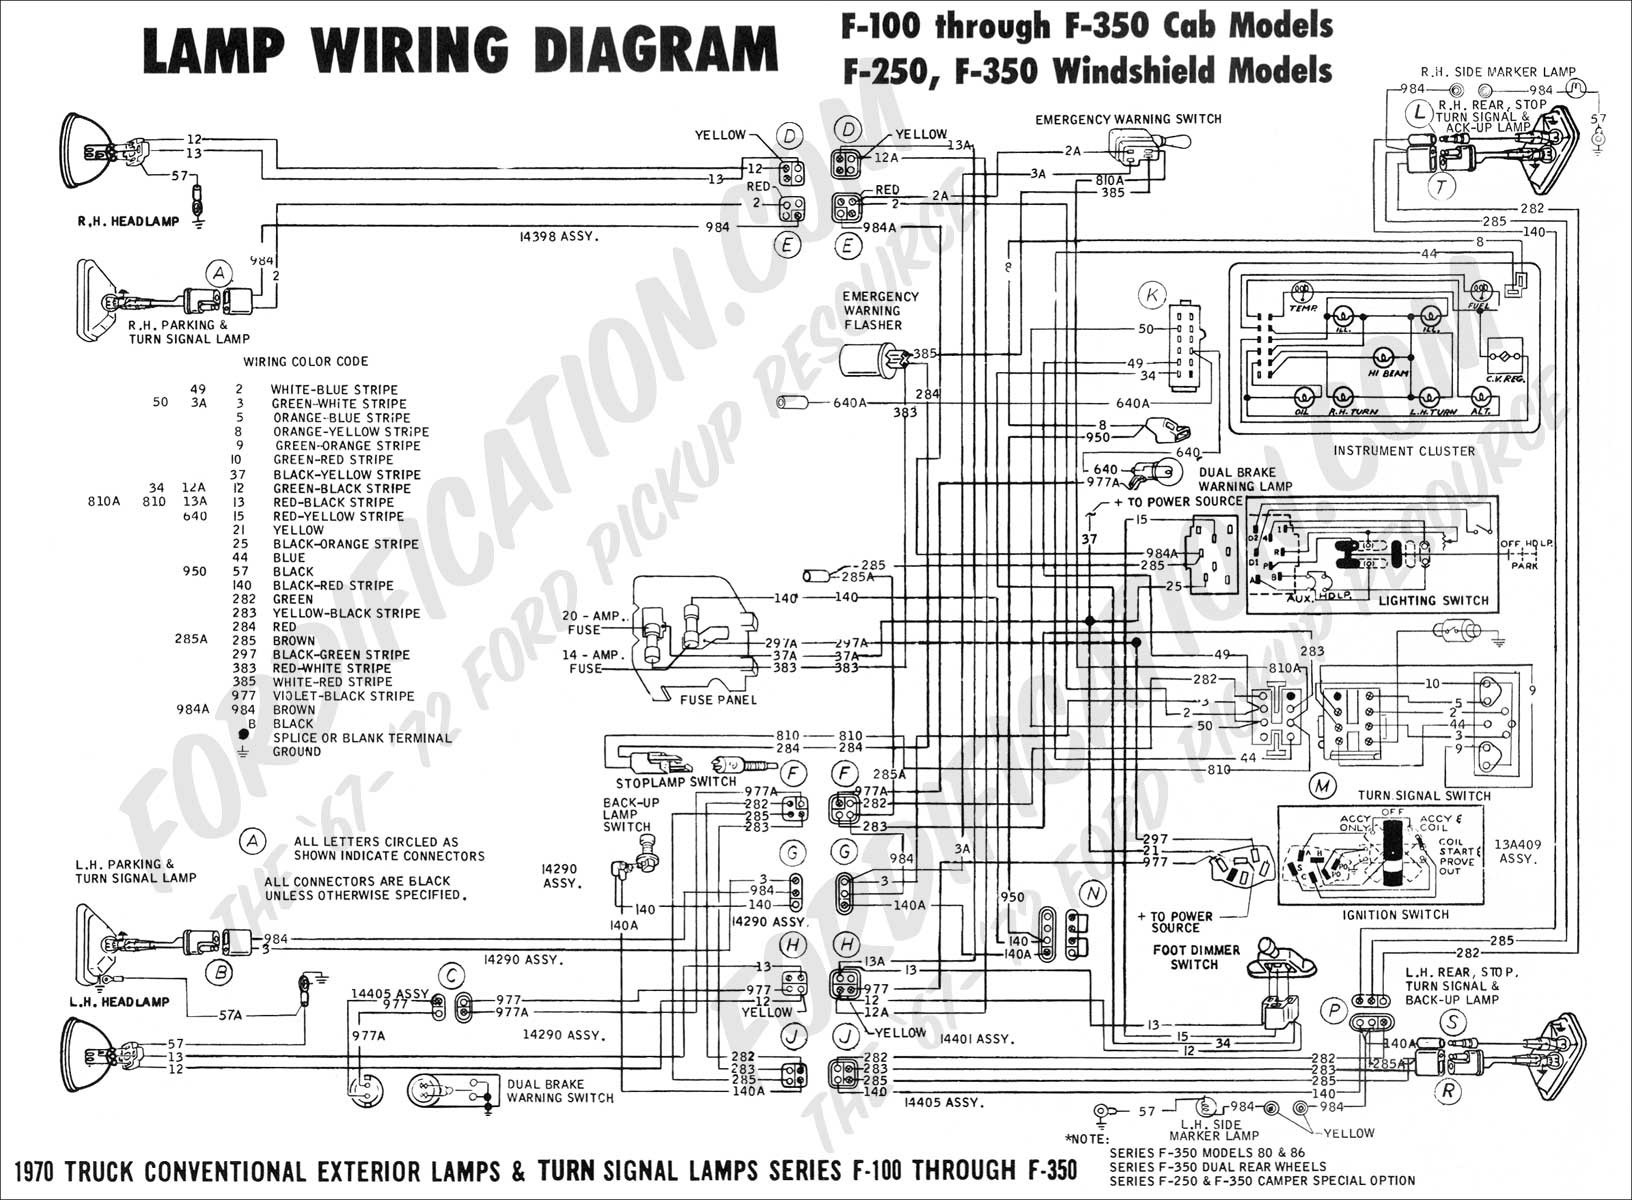 1975 Ford Truck Wiring Diagram